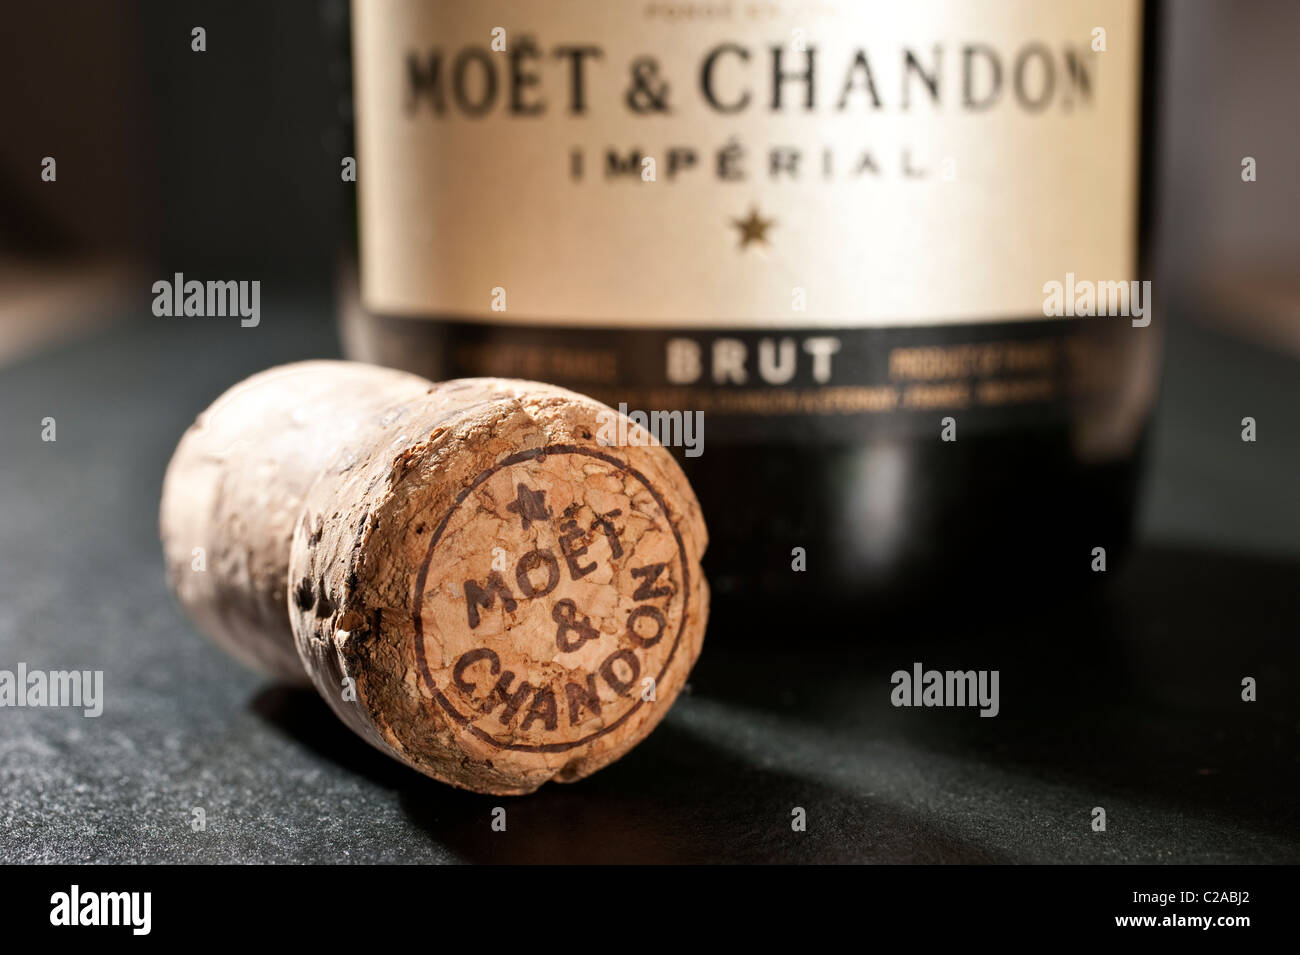 The cork and bottle of Moet and Chandon Champagne - Stock Image